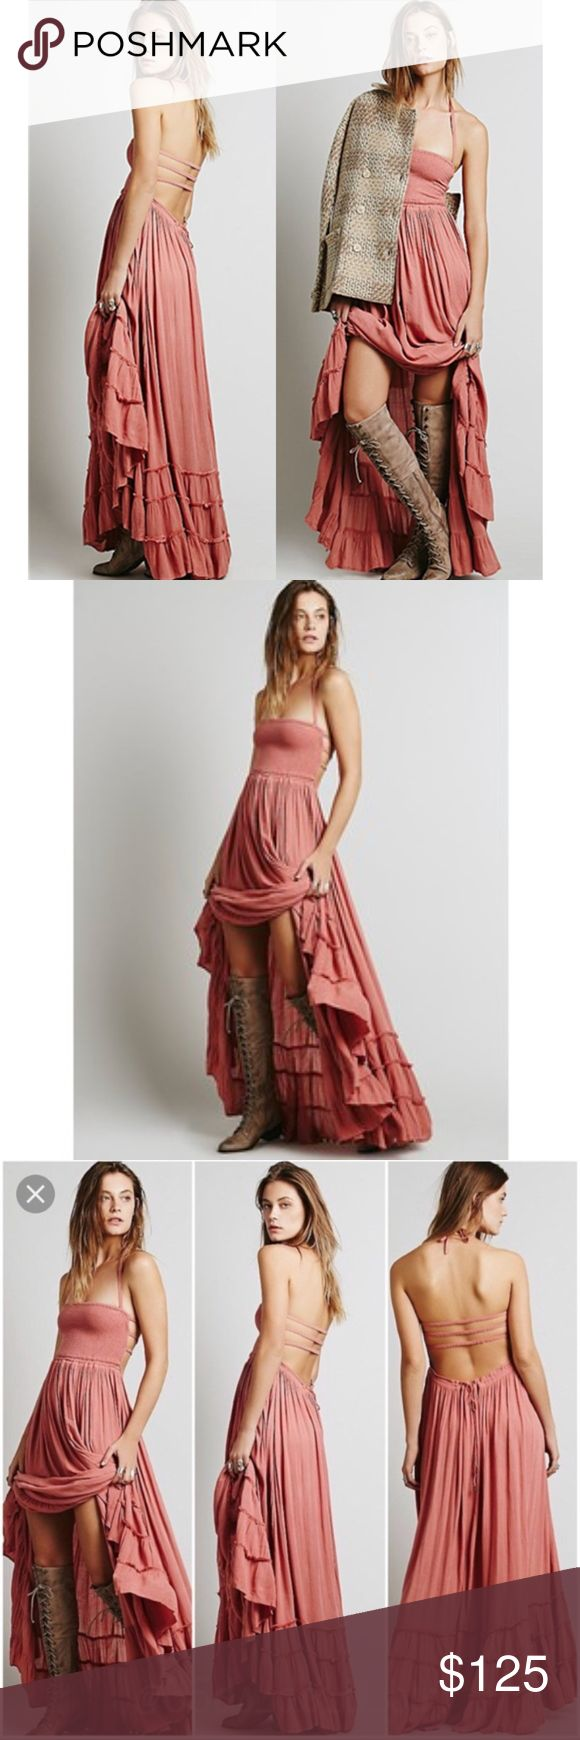 FREE PEOPLE EXTRATROPICAL DRESS IN DUSTY ROSE Crinkly strapless maxi dress, made from our sheer and gauzy Endless Summer fabric, with a stretchy smocked bodice, halter neck tie, and low strappy back. Raw seam detailing on the hem. Throw on top of a bikini or layer over one of our seamless styles for an effortless look. An Endless Summer- Whether you live the beach lifestyle year-round or dream of making the great escape, explore the collection of our most effortlessly ethereal styles under…